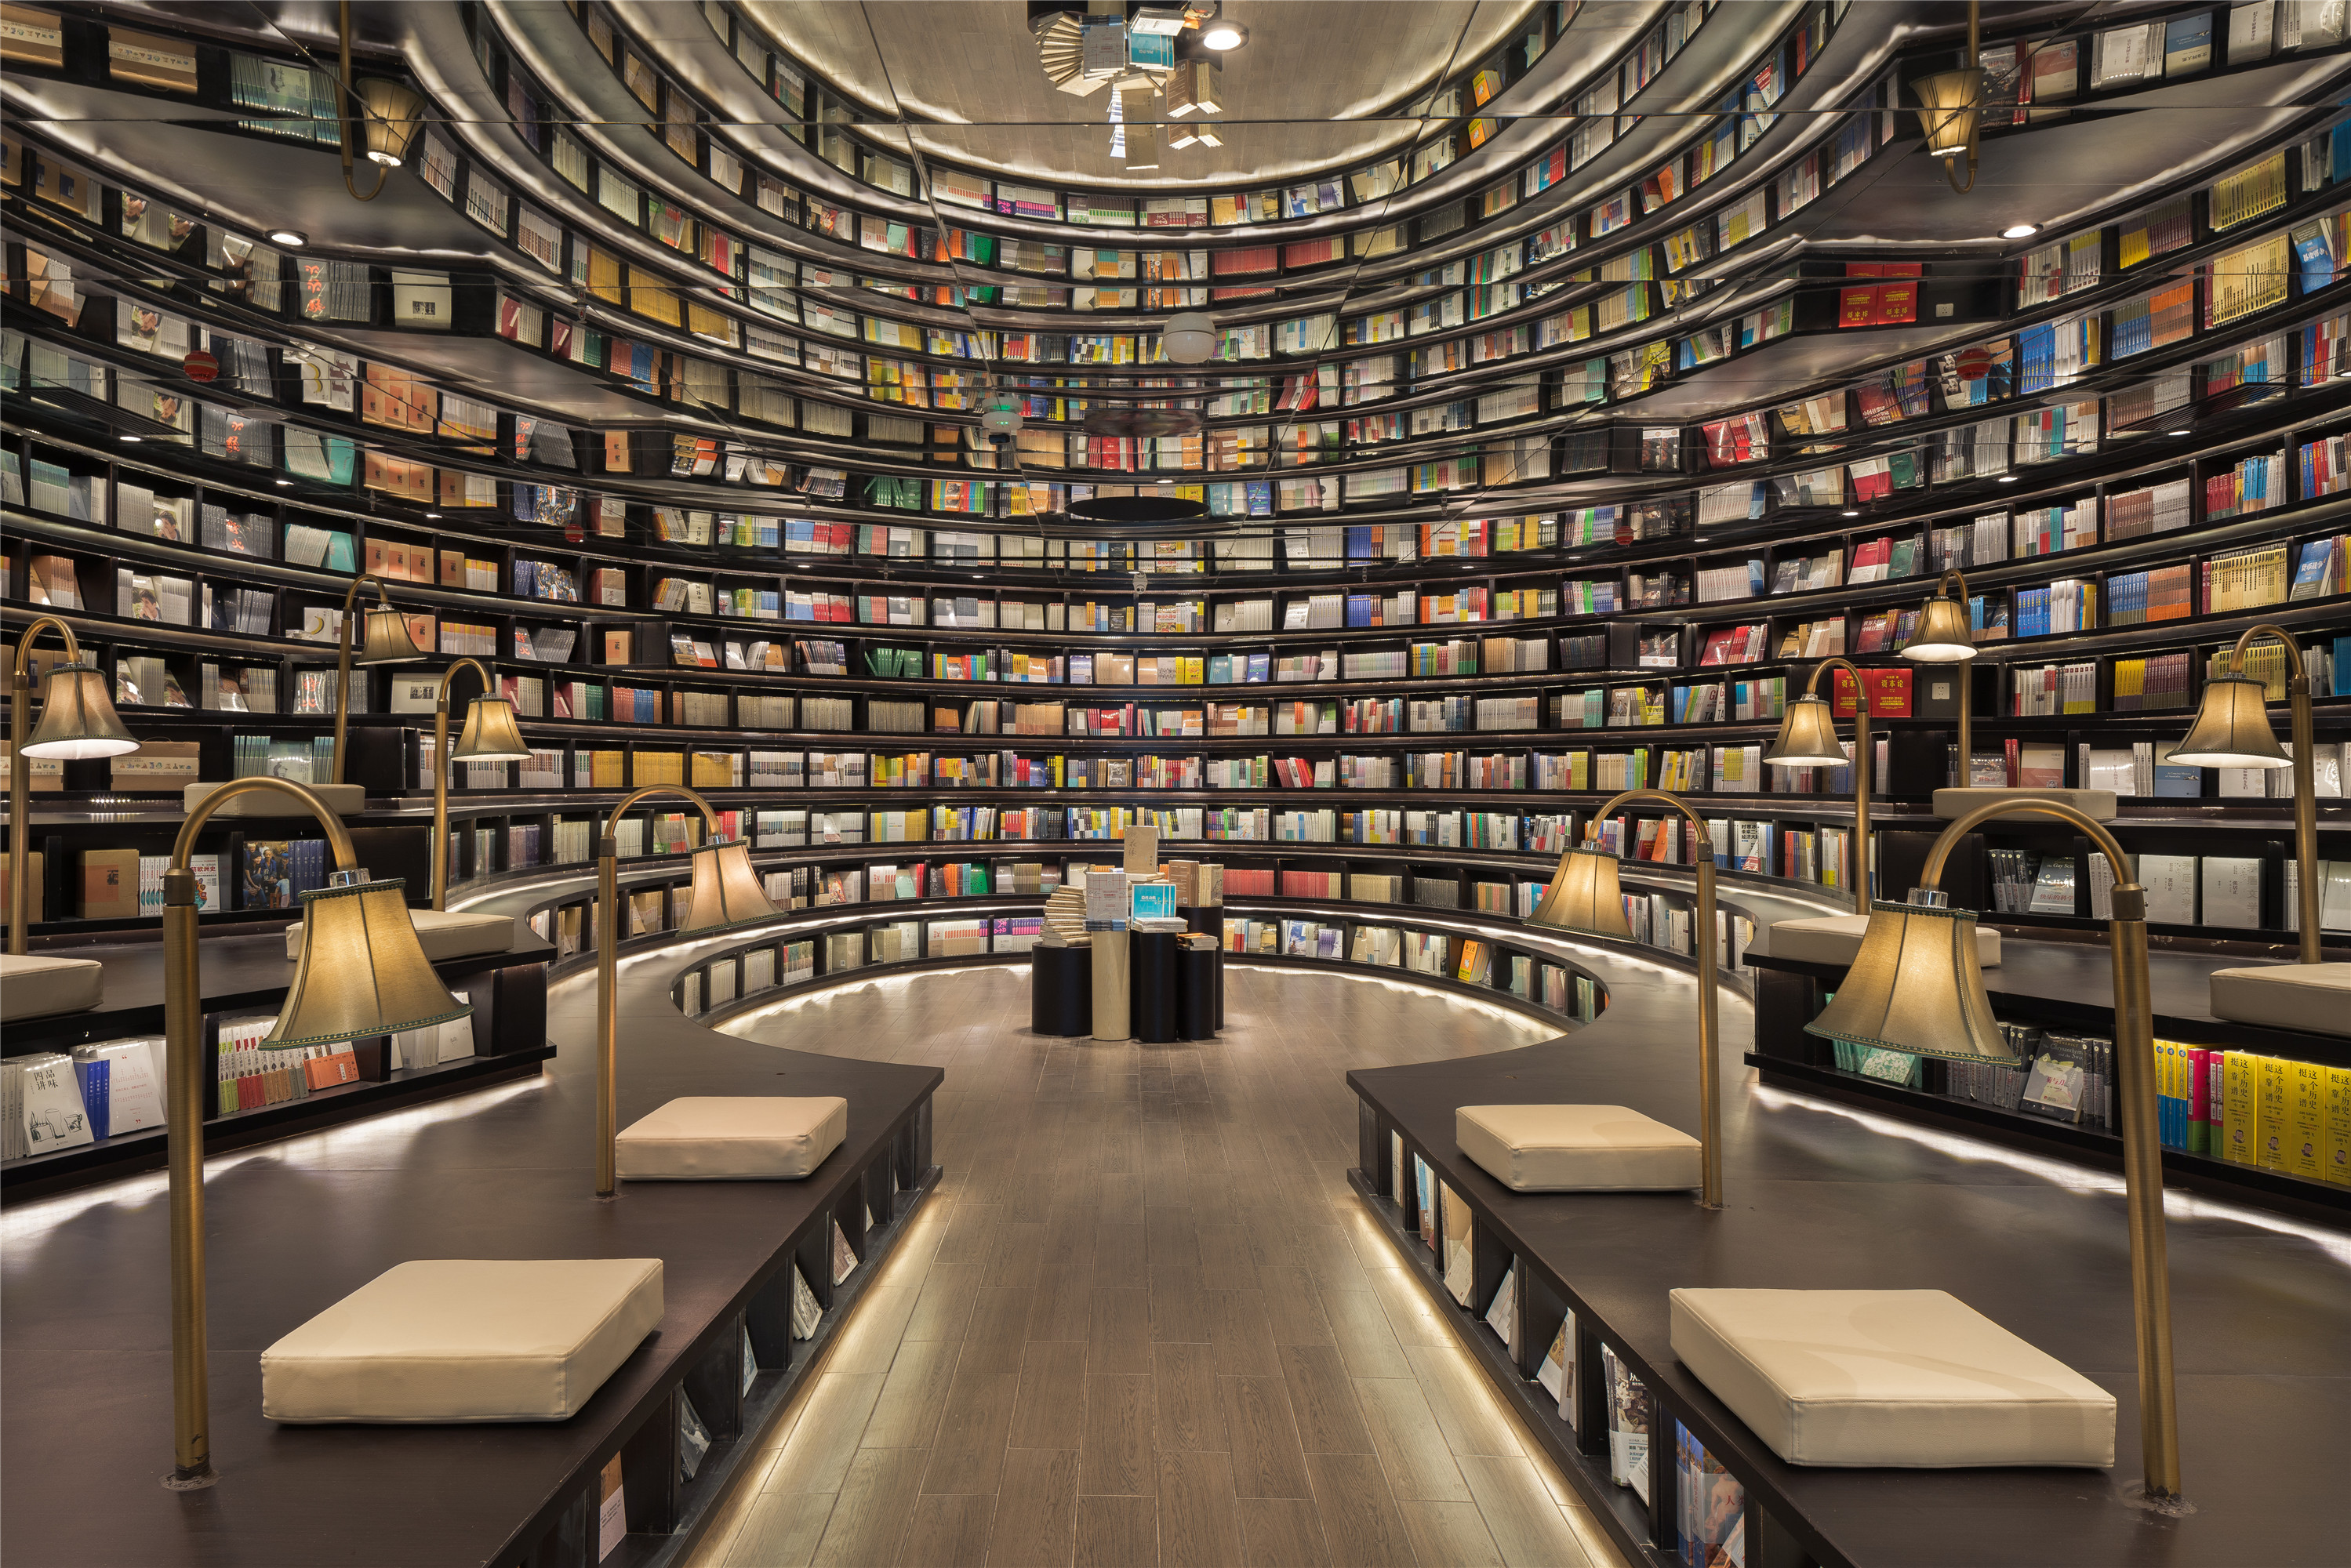 Mirrored ceiling makes this bookstore appear infinite in Hangzhou, China[2998×2000]